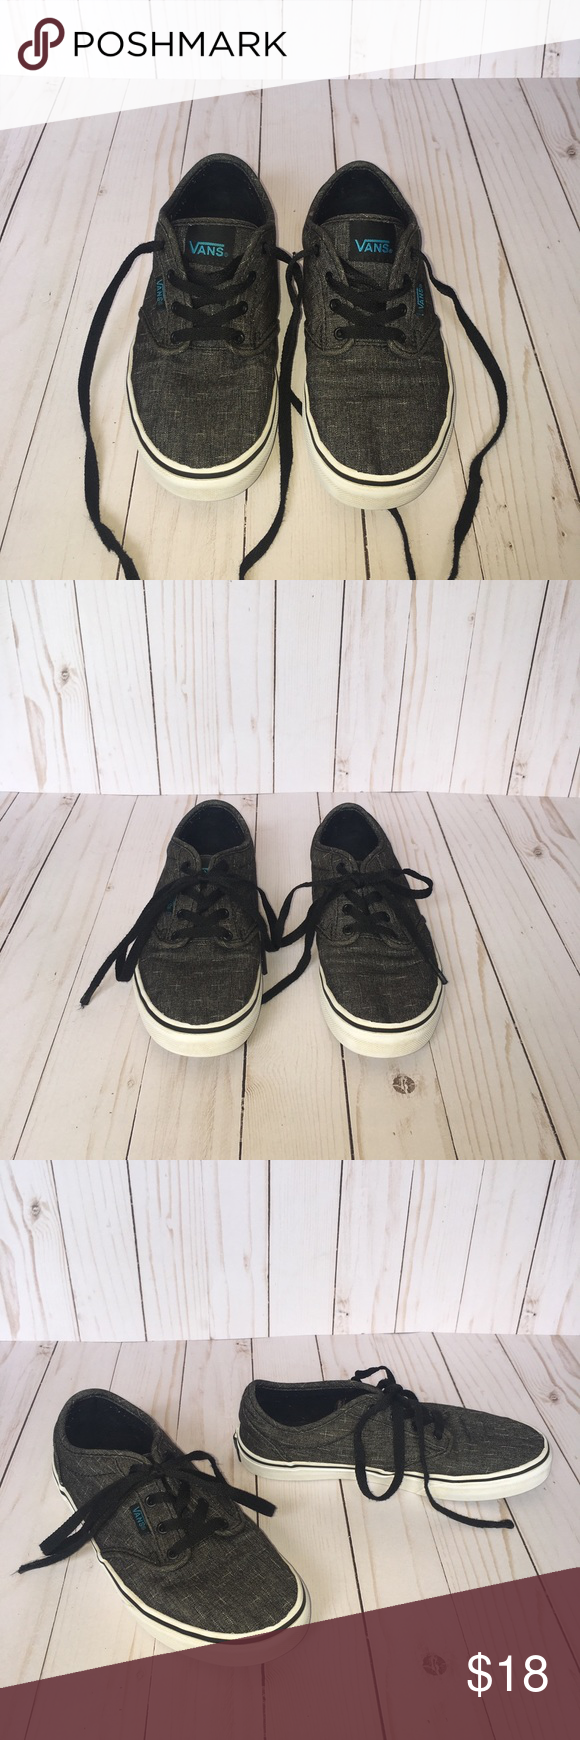 Youth Size 4 Black Off The Wall Vans